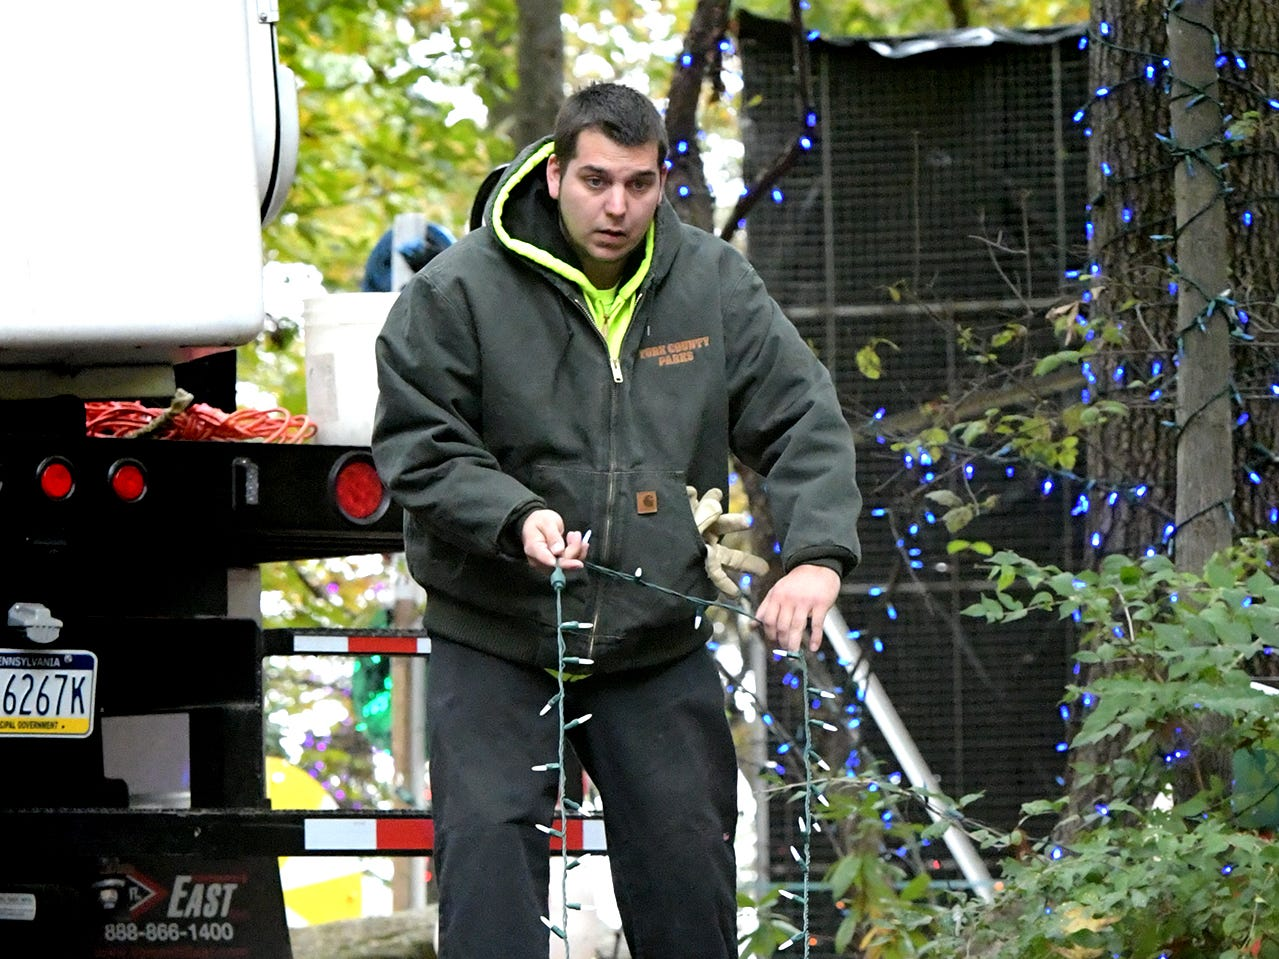 York County Parks and Recreation employee Mike Leiphart extends a string of lights from a spool at Rocky Ridge Park, Monday, Oct. 29, 2018, while preparing for the Christmas Magic event. The event, featuring 600,000 lights along a half-mile trail, is in its 35th year. Christmas Magic runs daily from Nov. 23 through December 31. It is closed on Dec. 24 and 25. Hours for the event are Monday through Thursday, 6-9 p.m.; and Friday through Sunday, 5-9 p.m. Tickets will available online starting in early November, according to the department's website. Friday, Saturday and Sunday require pre-purchased ticket sales. Bill Kalina photo